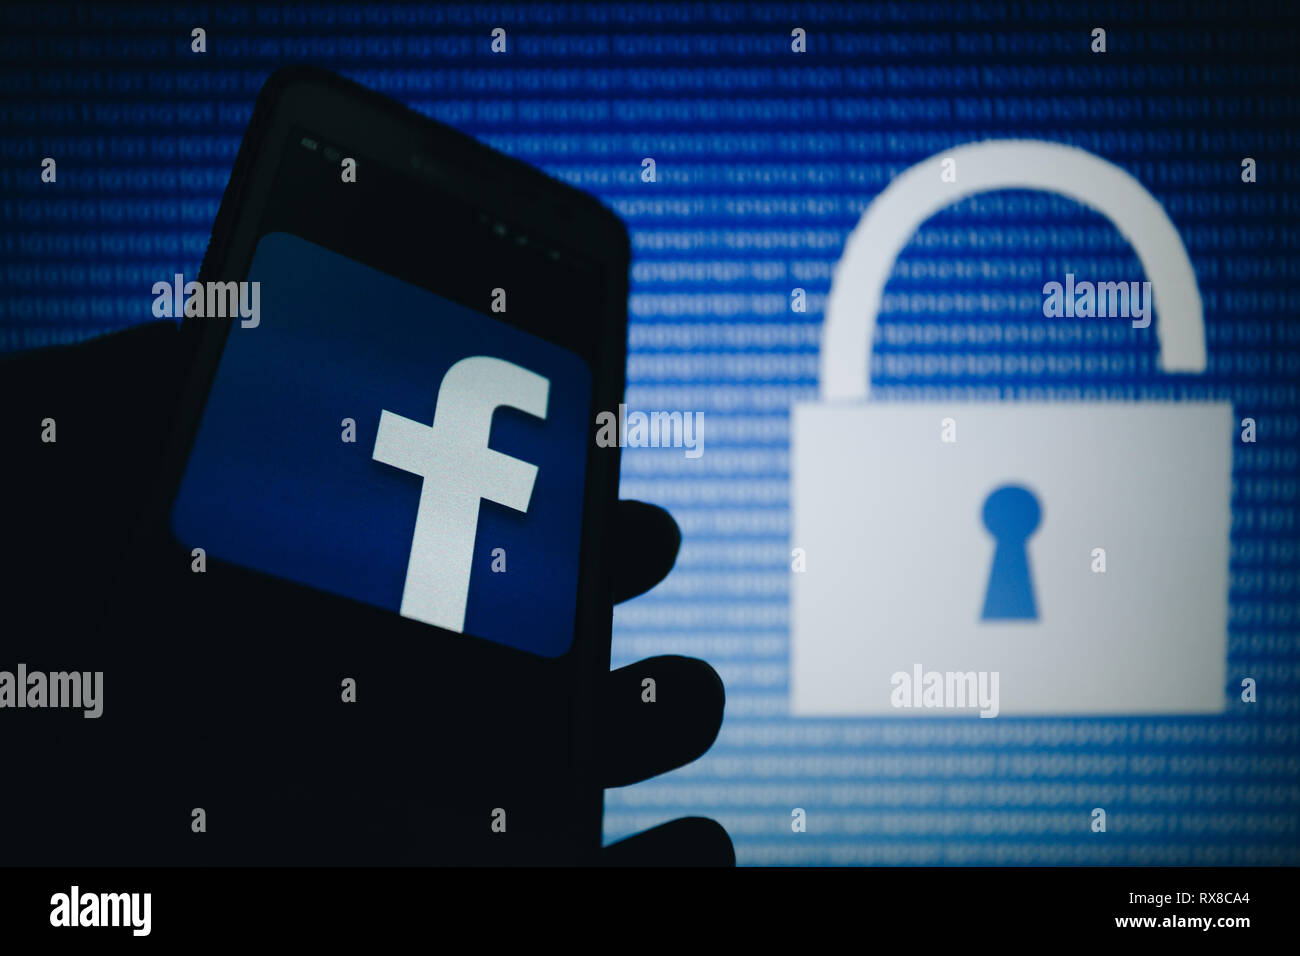 Facebook icon, logo is shown on smartphone display, open lock, numbers zero, one as a texture, blue gradient unfocused on background - Stock Image